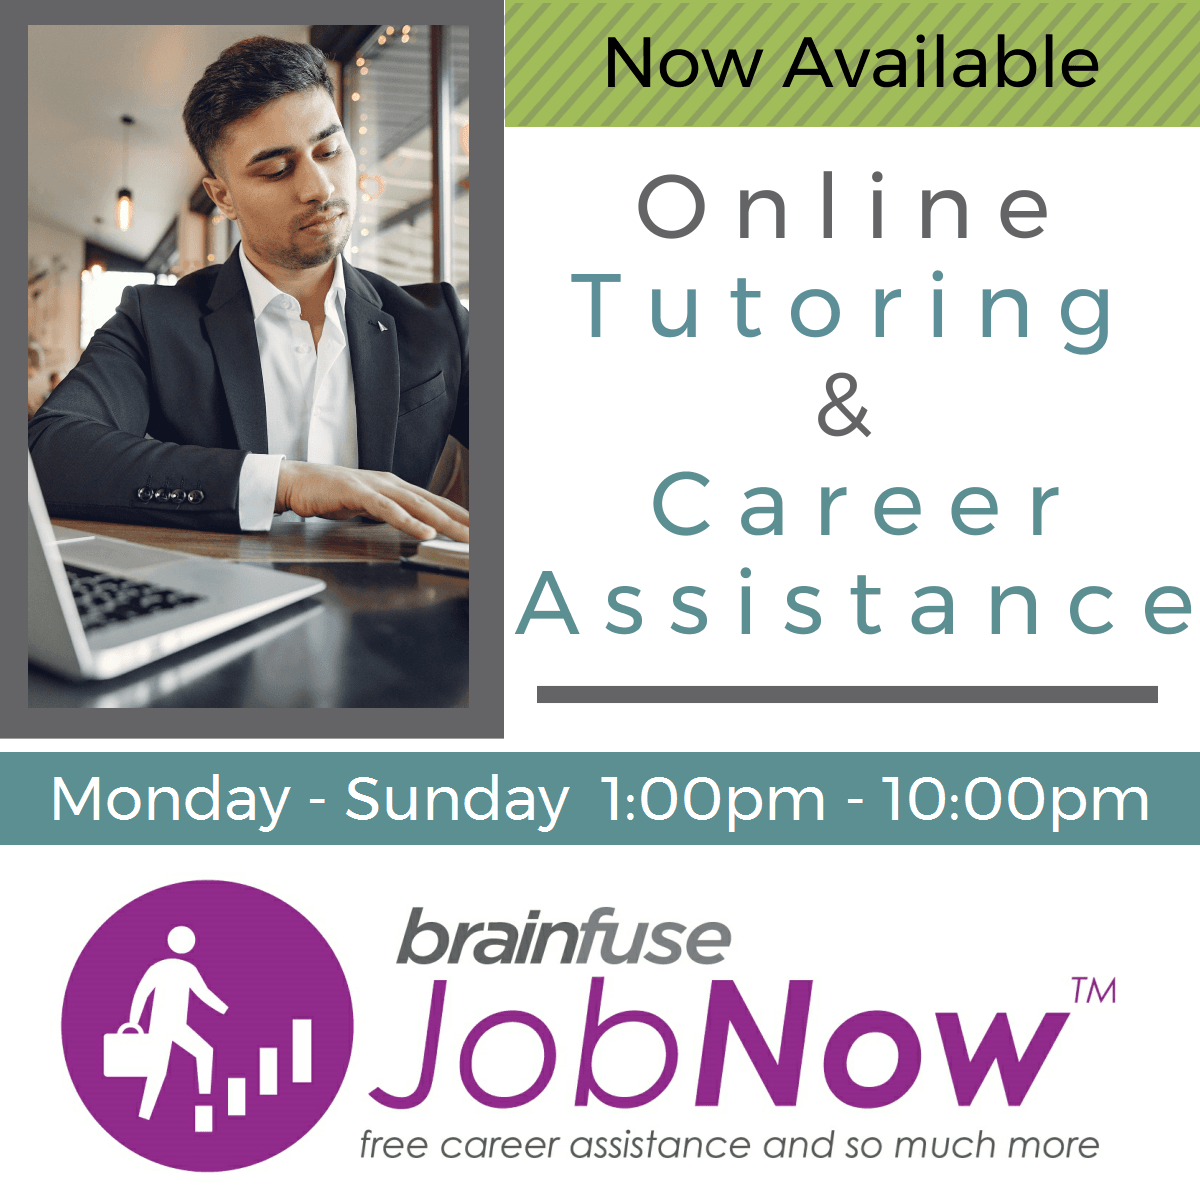 free online tutoring and career assistance available through brainfuse job now service